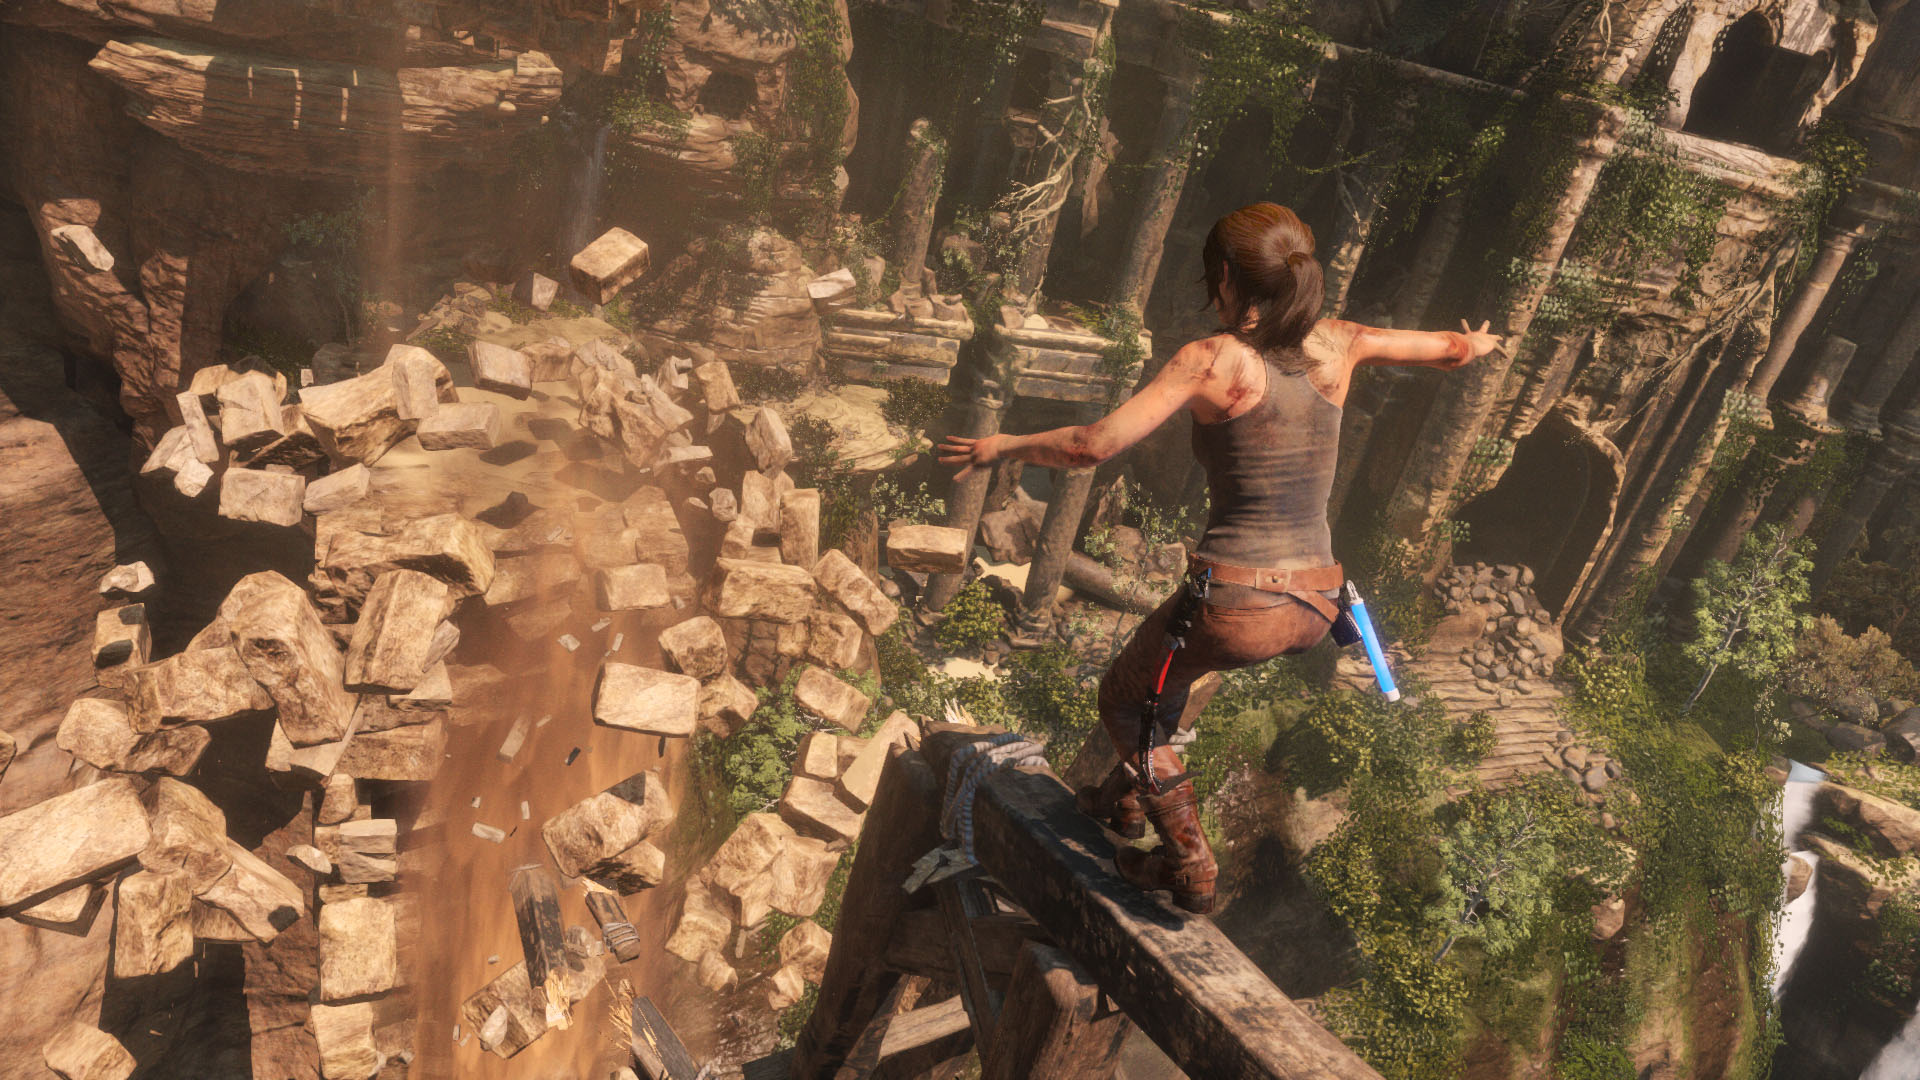 Lara balances herself on a broken beam as the rock platform ahead of her crumbles.